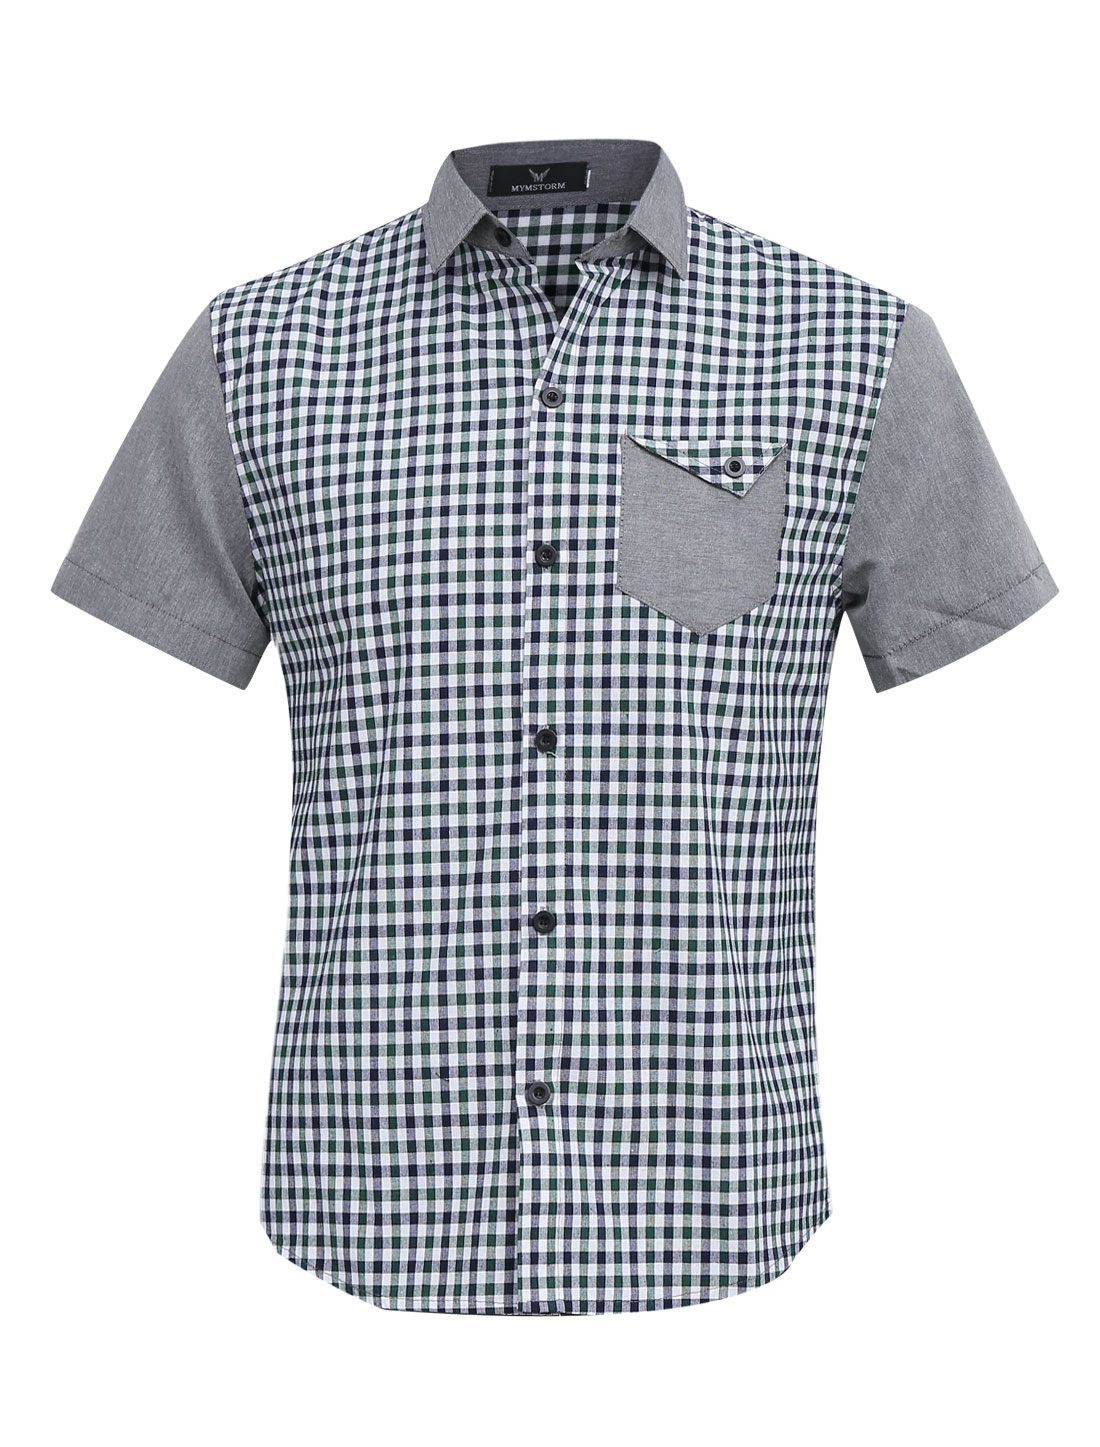 Men Chic Buttons Closed Plaids Pattern Splicing Shirt Green Light Gray M